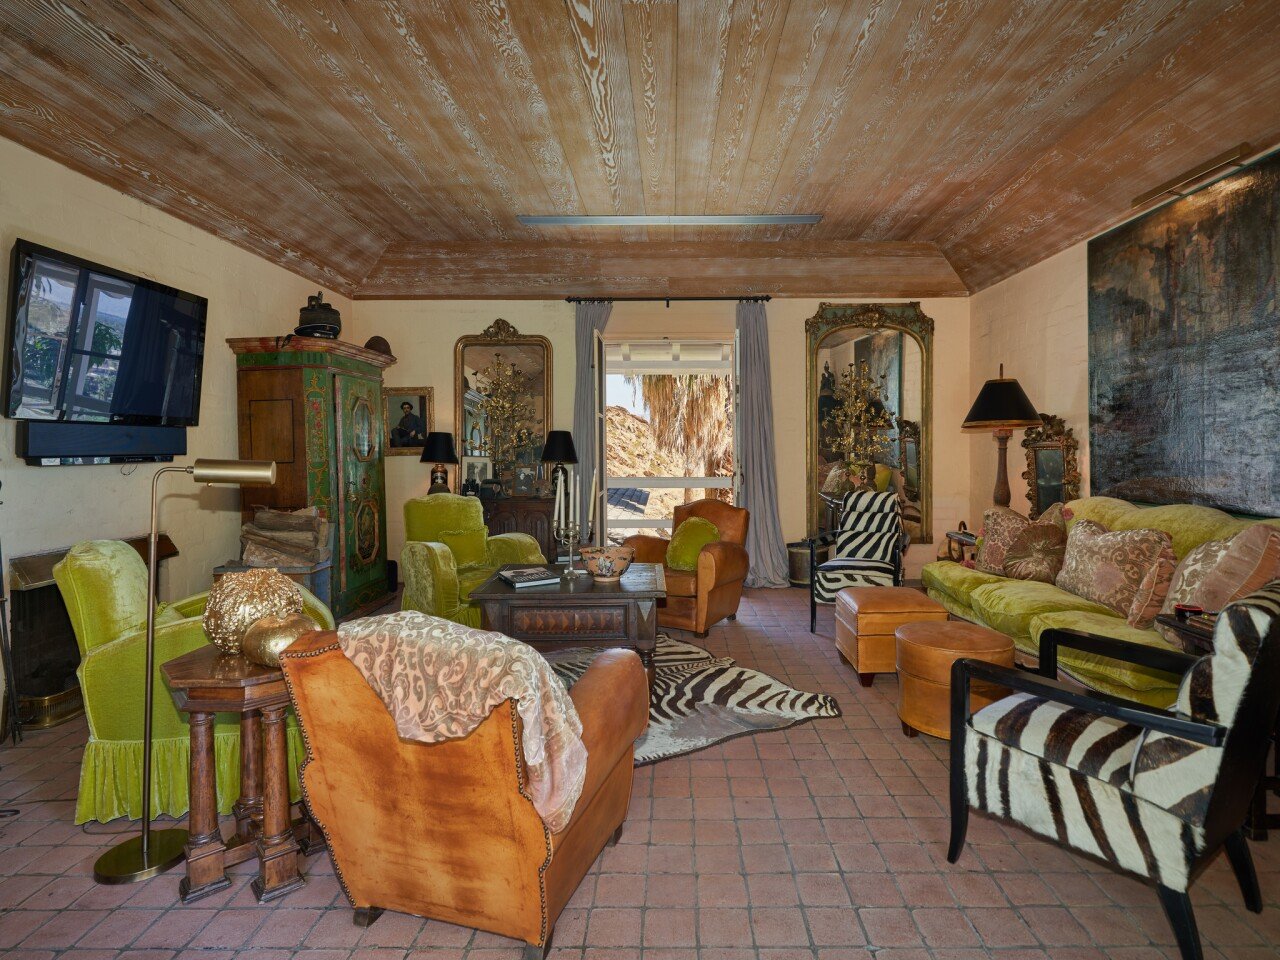 Suzanne Somers' desert home | Hot Property